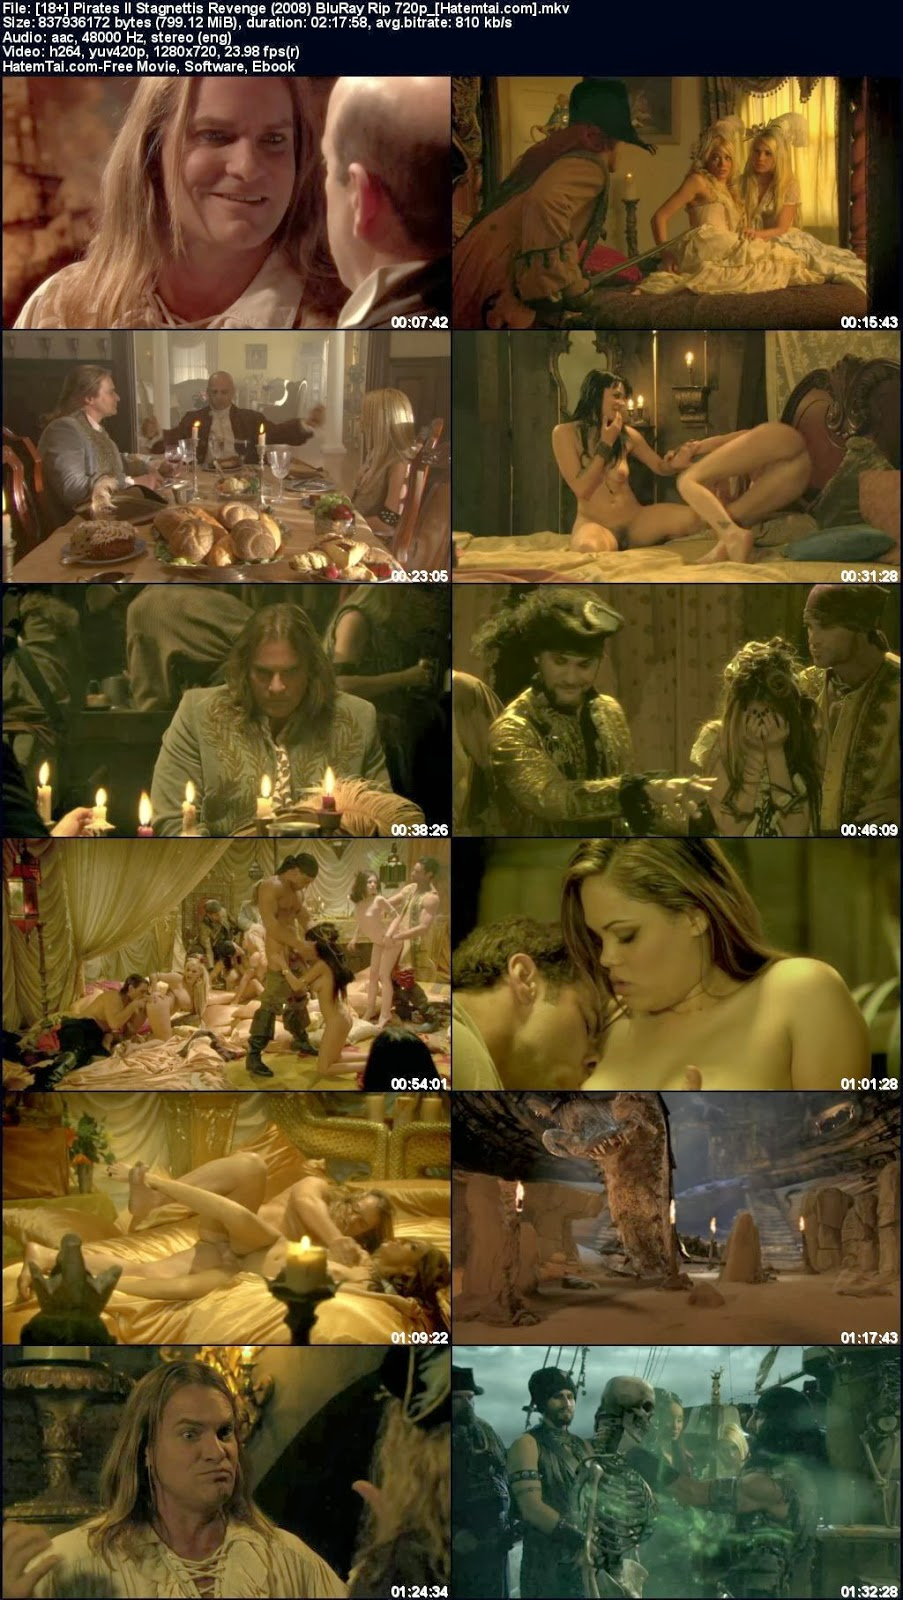 Pirates erotic film watch online sex bitches